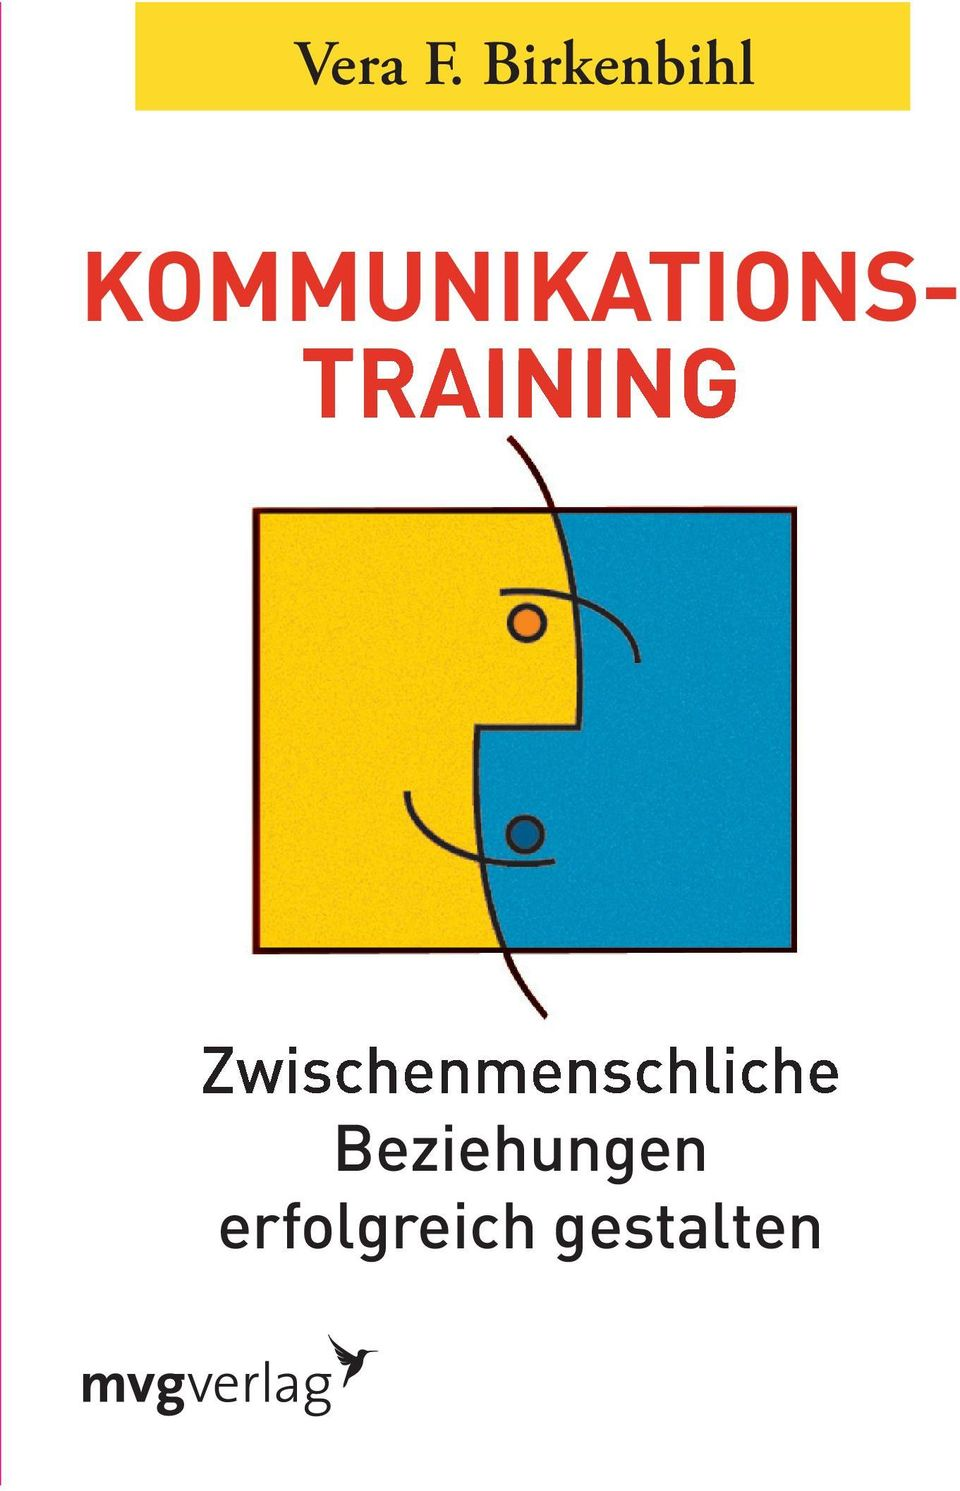 KOMMUNIKATIONS- TRAINING